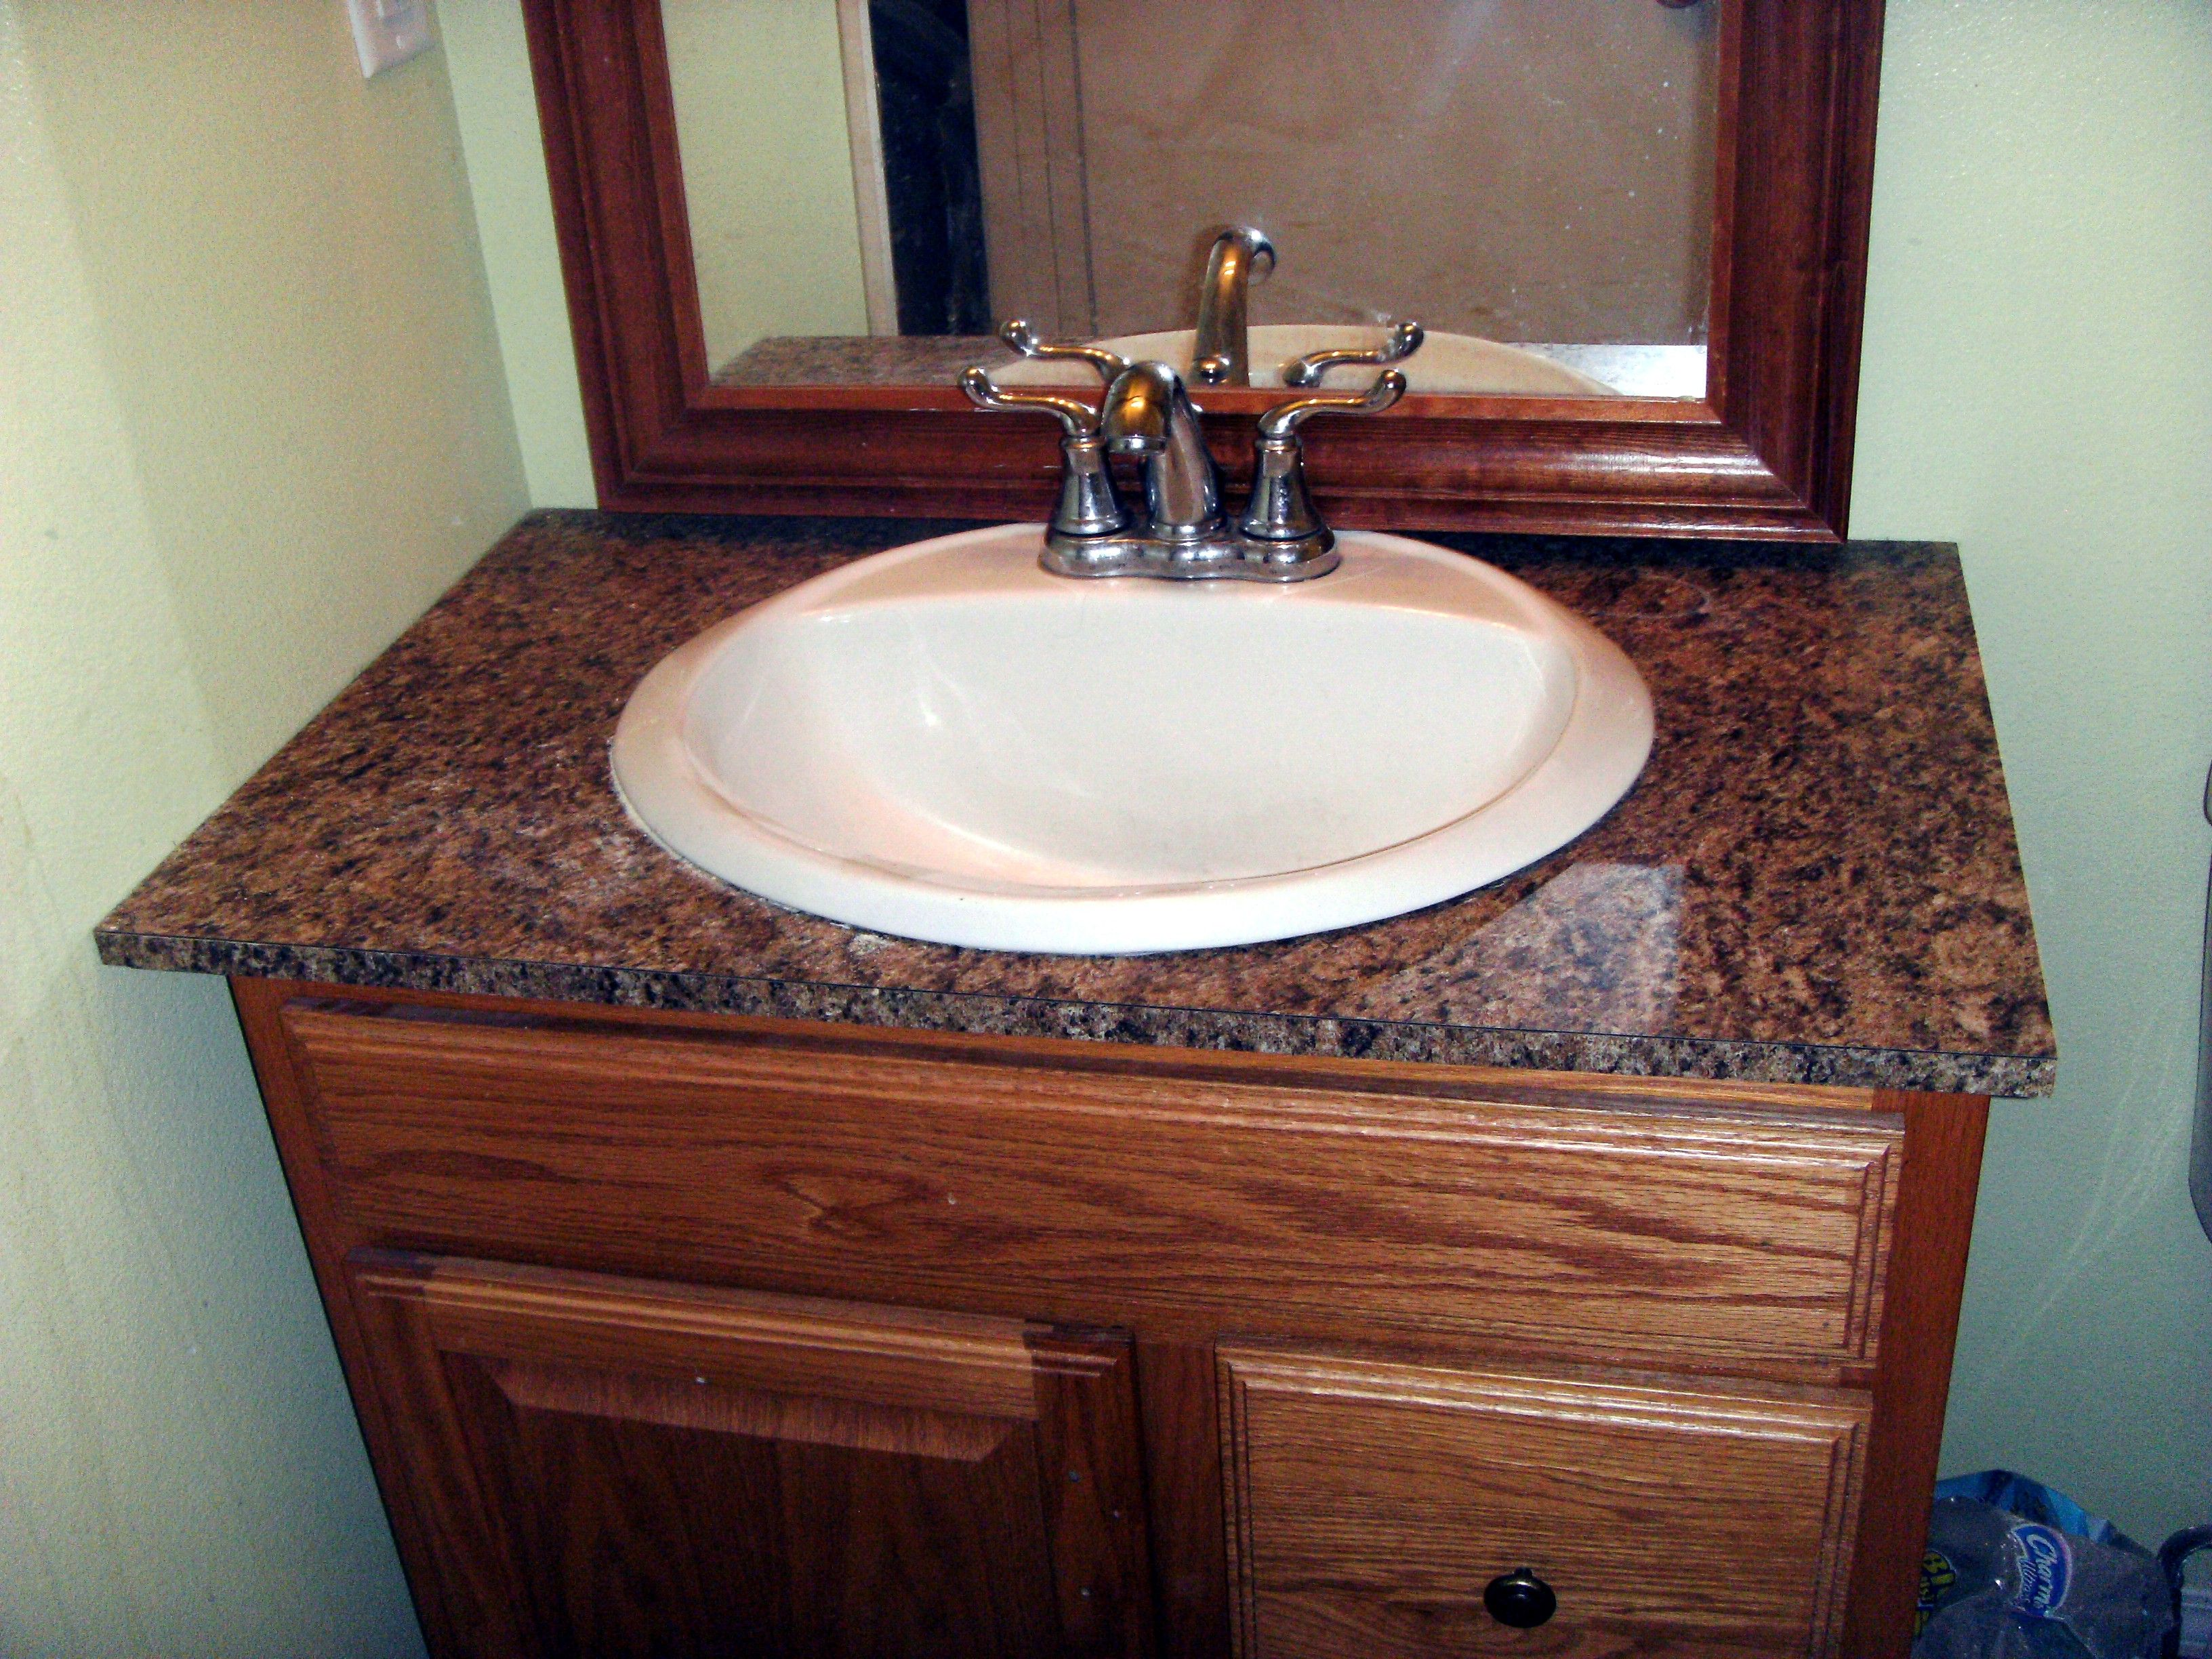 Make Photo Gallery How to Install Laminate Formica for a Bathroom Vanity Countertop